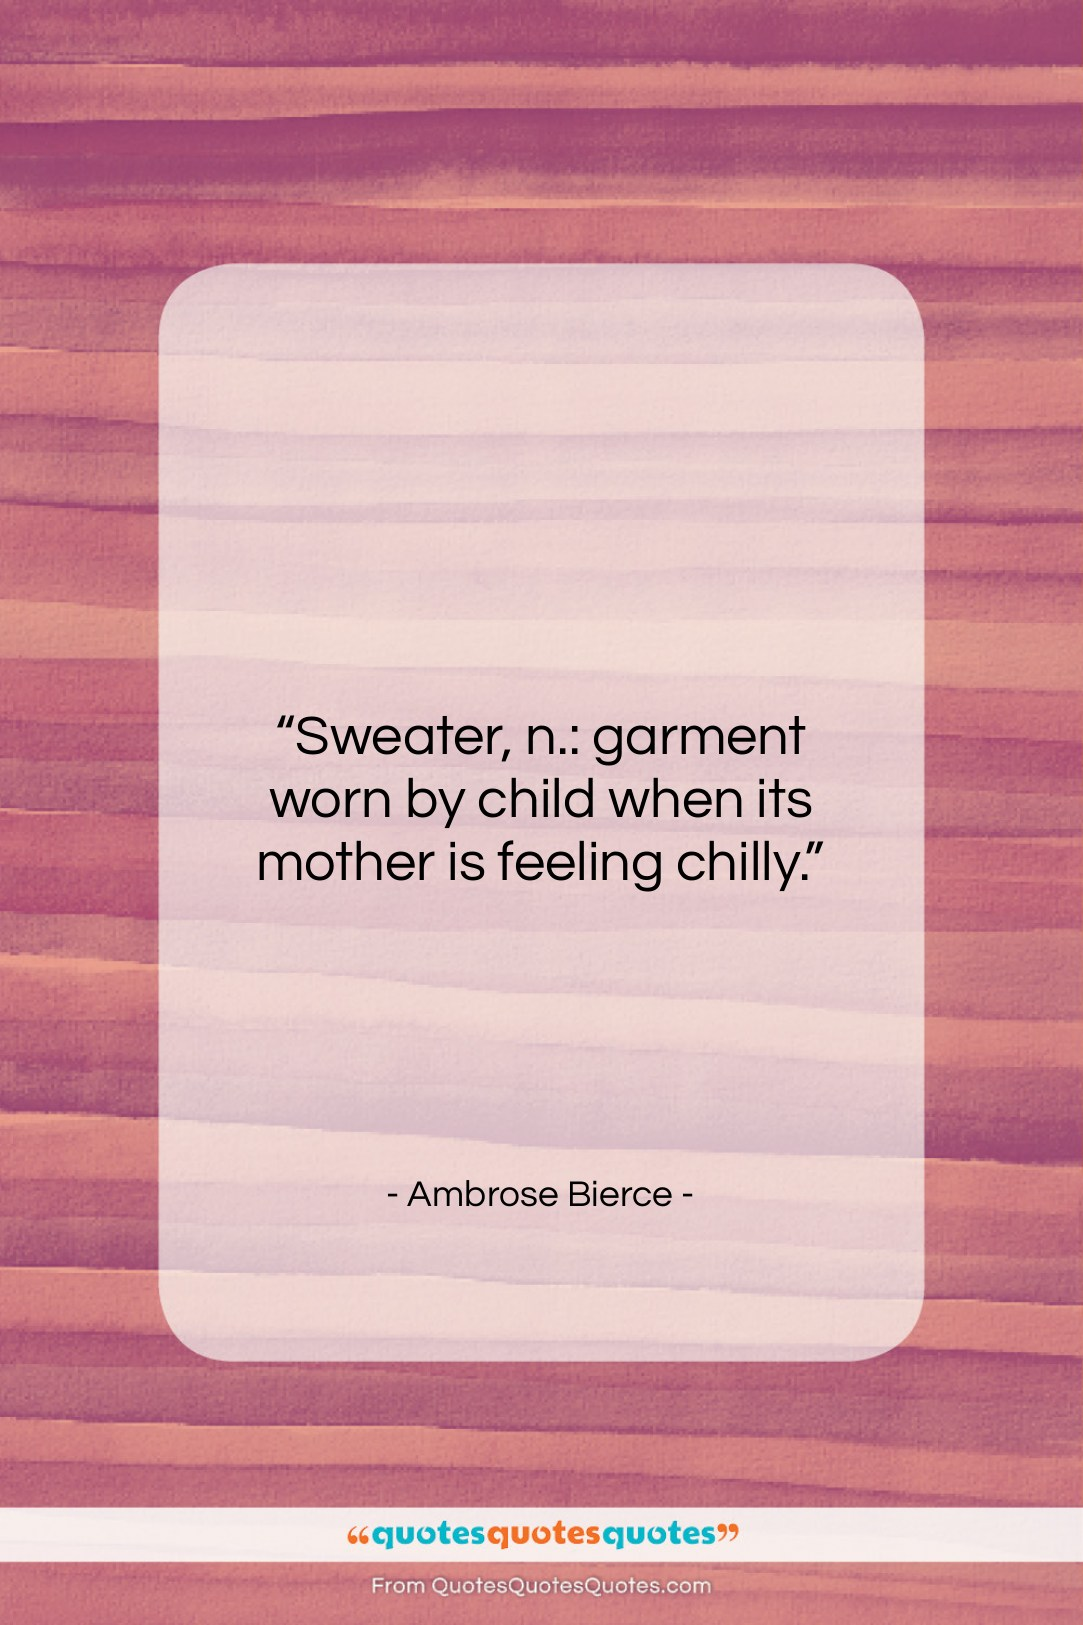 """Ambrose Bierce quote: """"Sweater, n.: garment worn by child when…""""- at QuotesQuotesQuotes.com"""